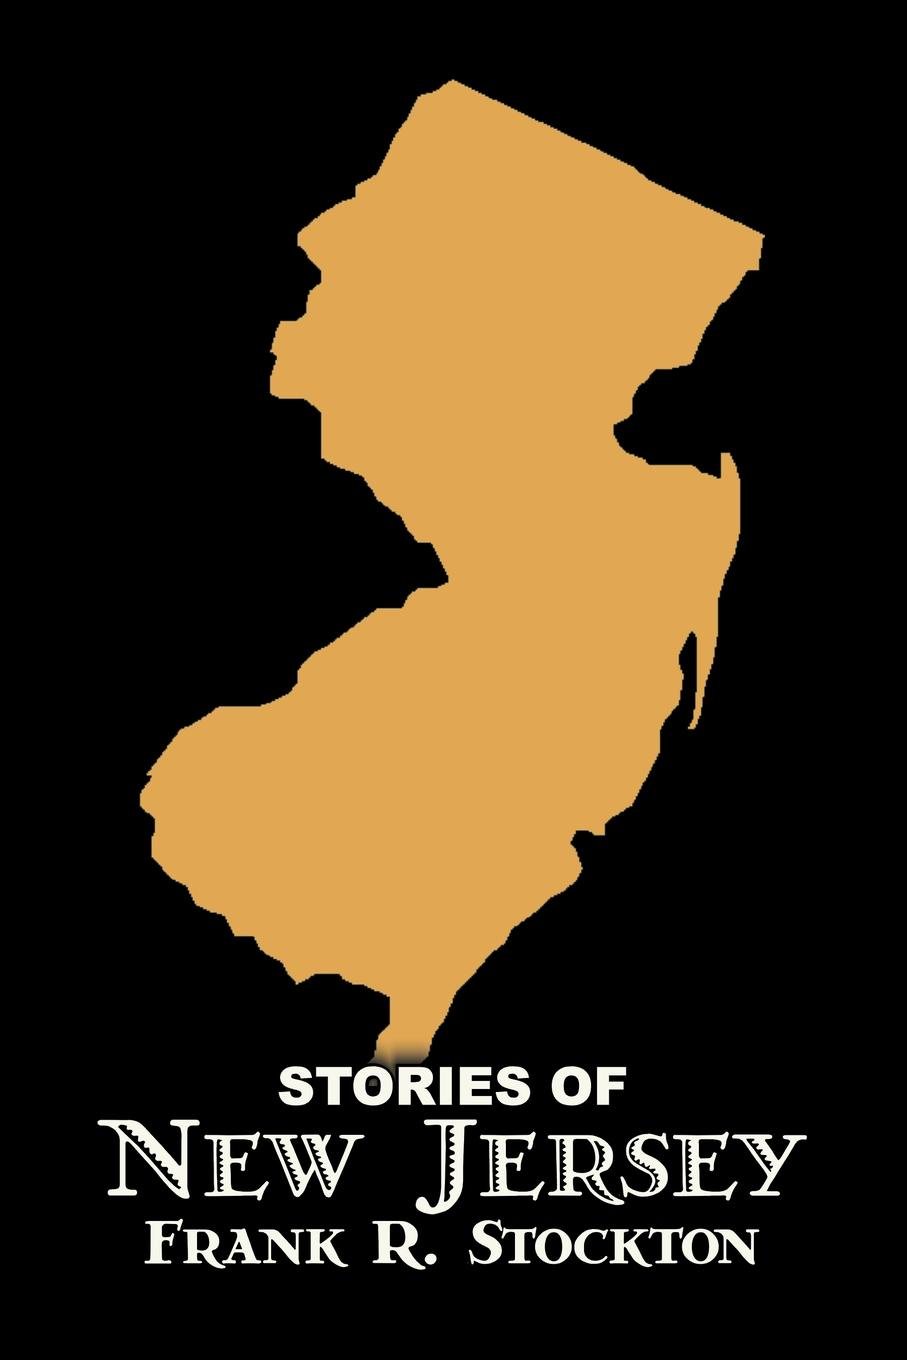 Frank R. Stockton Stories of New Jersey by Frank R. Stockton, Fiction, Fantasy & Magic, Legends, Myths, & Fables